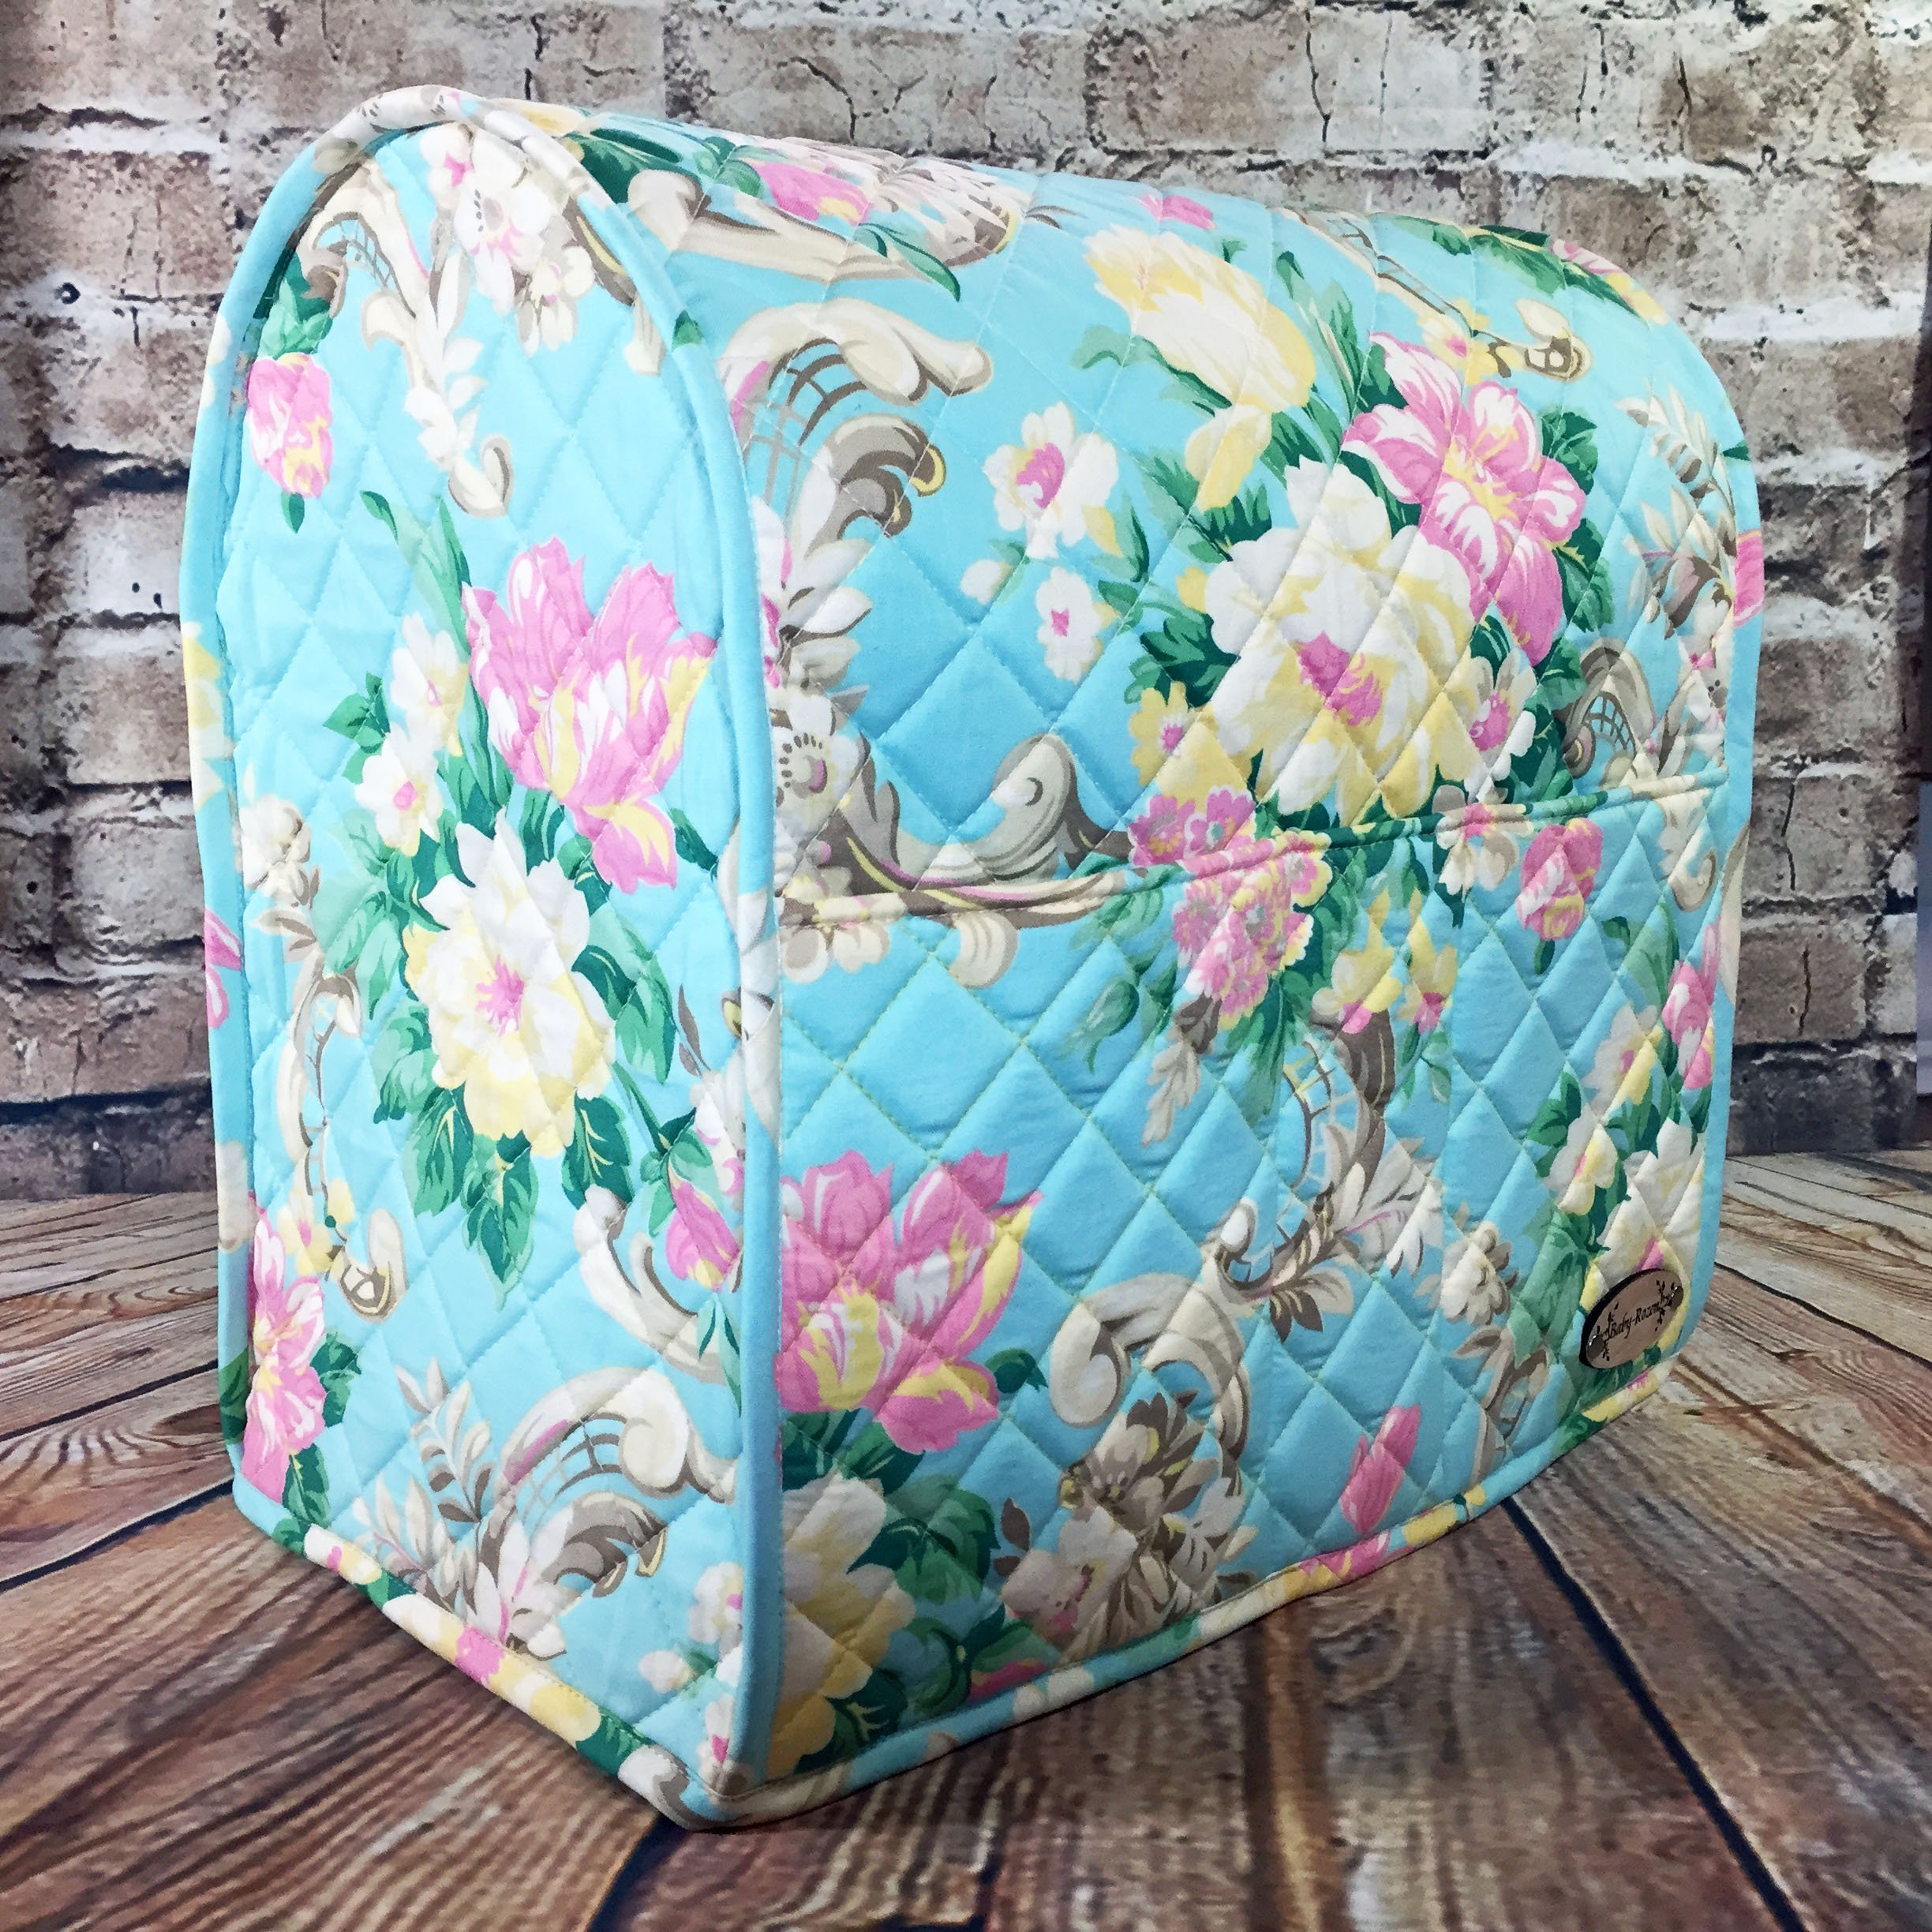 100% Cotton, Custom, Heirloom Quality, Quilted, Mixer Cover, Handcrafted to fit a 4.5 Qt. or 5 Qt. KitchenAid Tilt-Head Stand Mixer, Cozy, Made in Vermont by Baby Rozen Design (Image #4)